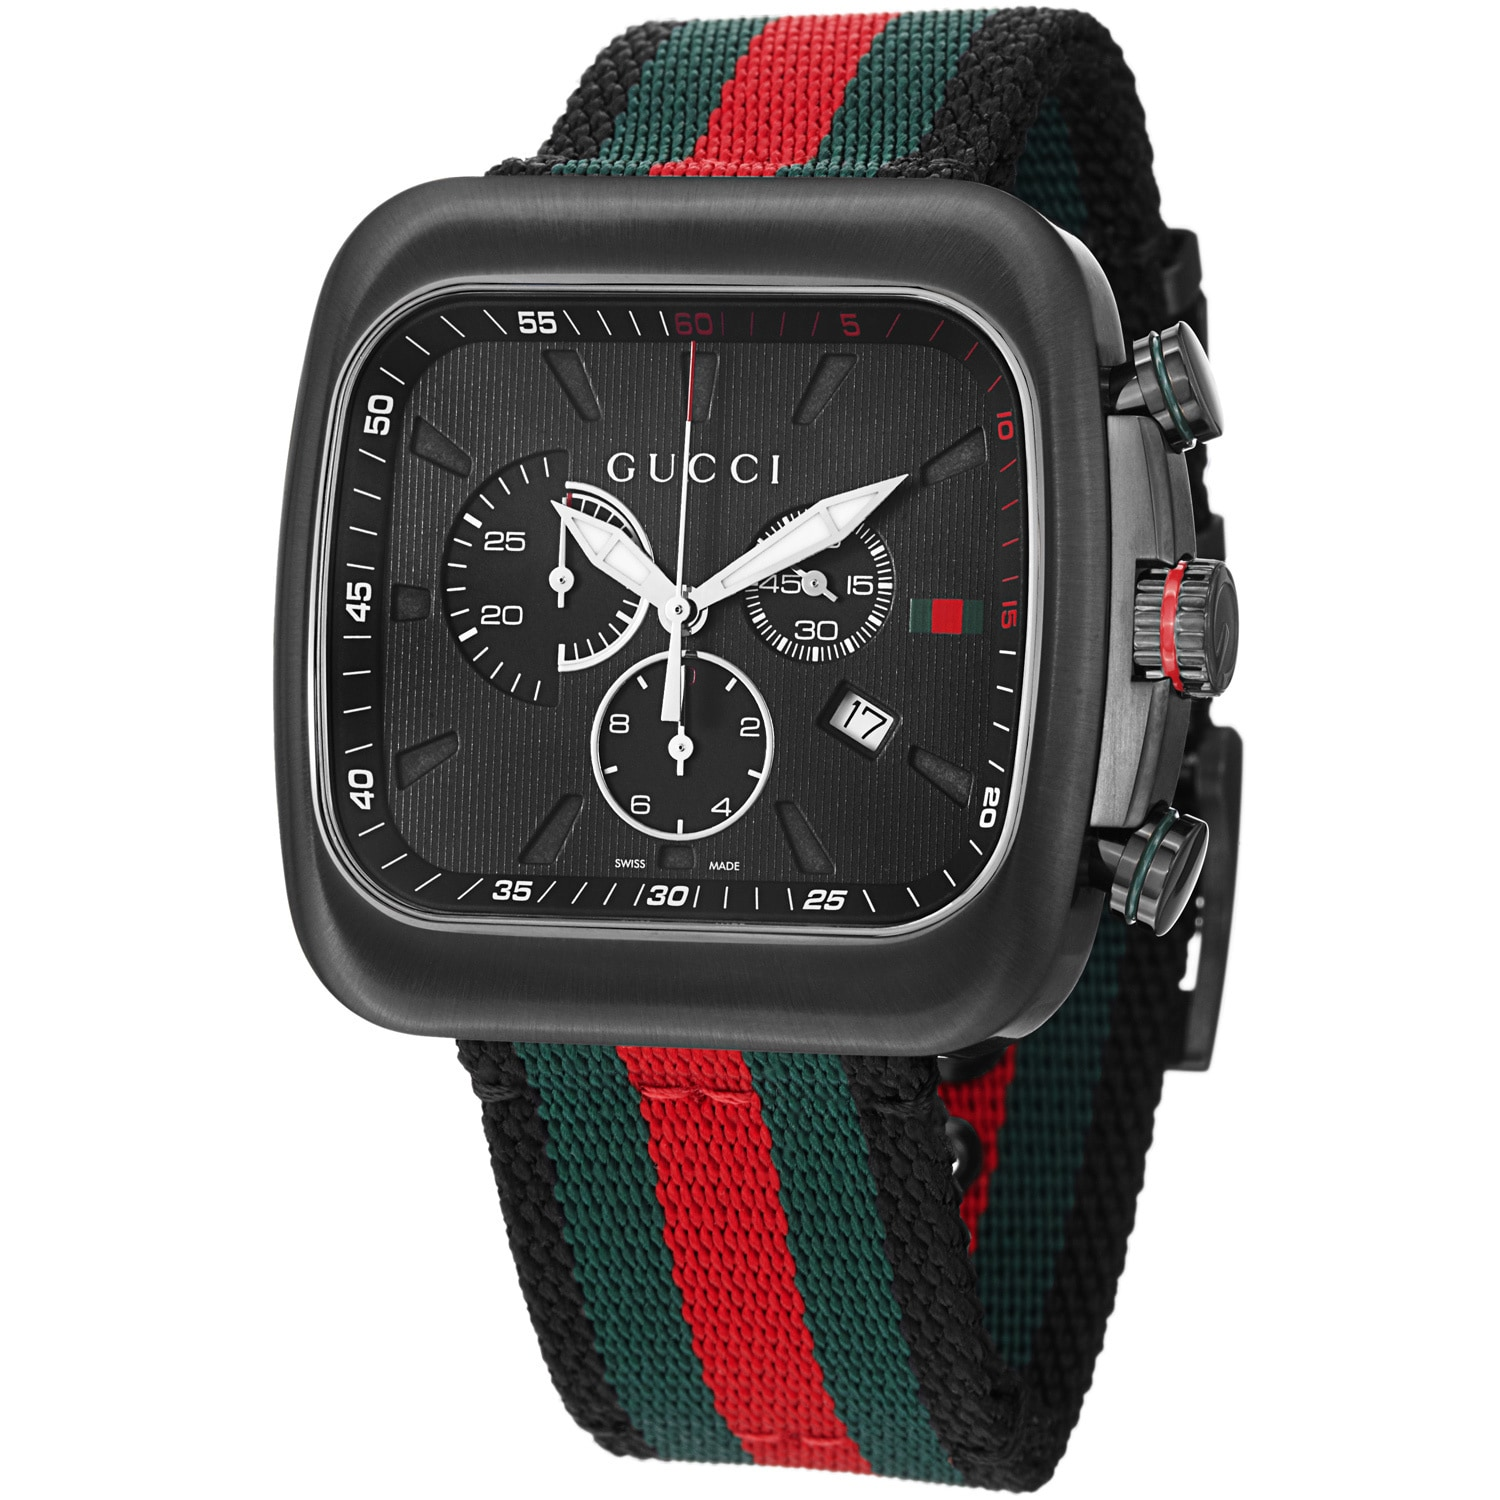 6c395c9a489 Shop Gucci Men s YA131202  Coupe  Black Dial Nylon Strap Chronograph Watch  - Free Shipping Today - Overstock - 8096211